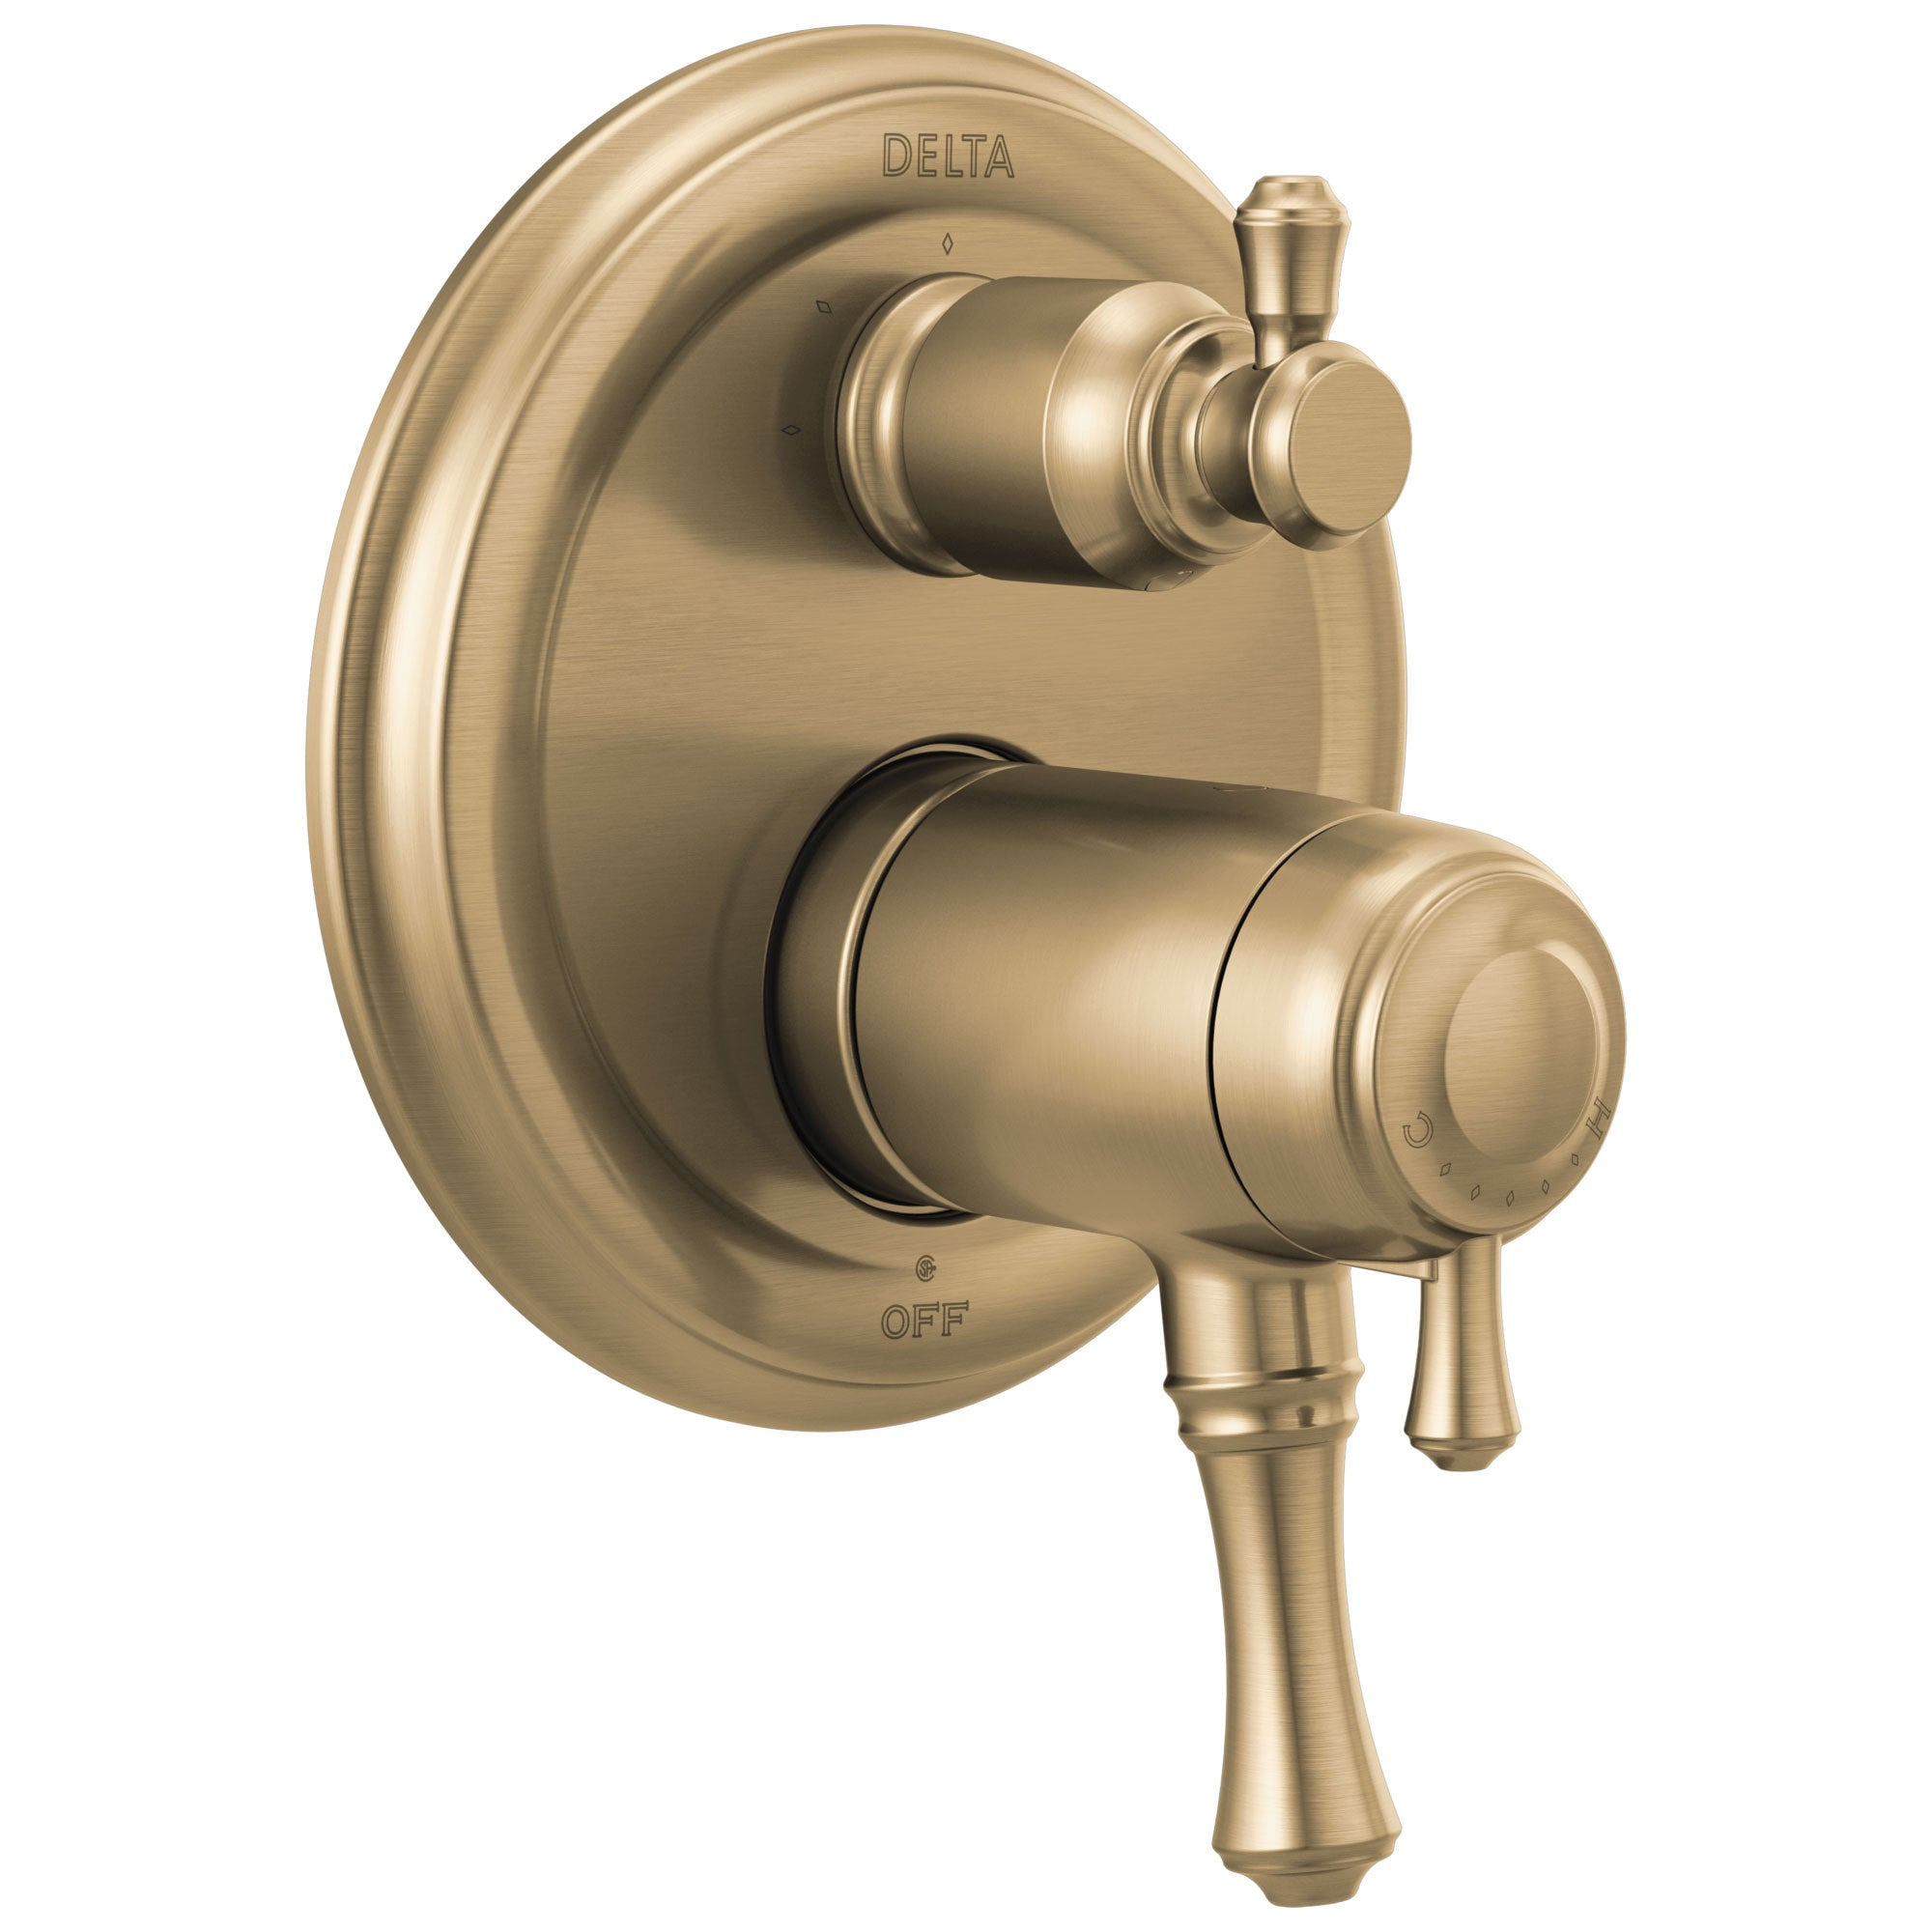 Delta Cassidy Champagne Bronze Finish 17T Thermostatic Shower System Control with 3-Setting Integrated Diverter Includes Valve and Handles D3093V